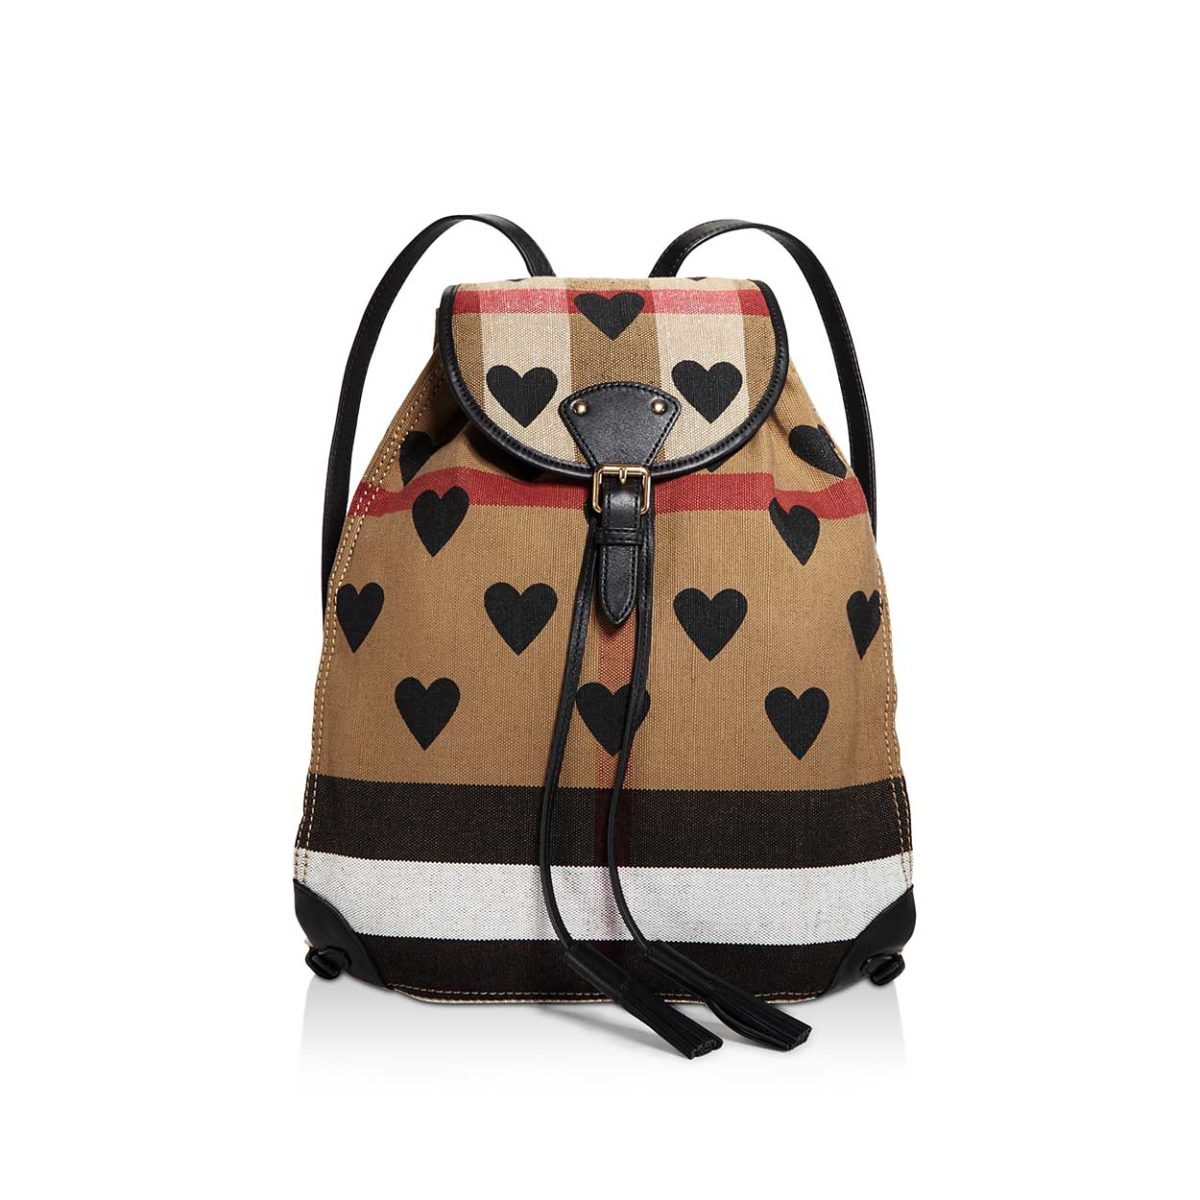 BURBERRY Canvas Check Hearts Medium Chiltern Backpack - NEW  3c874228b9311